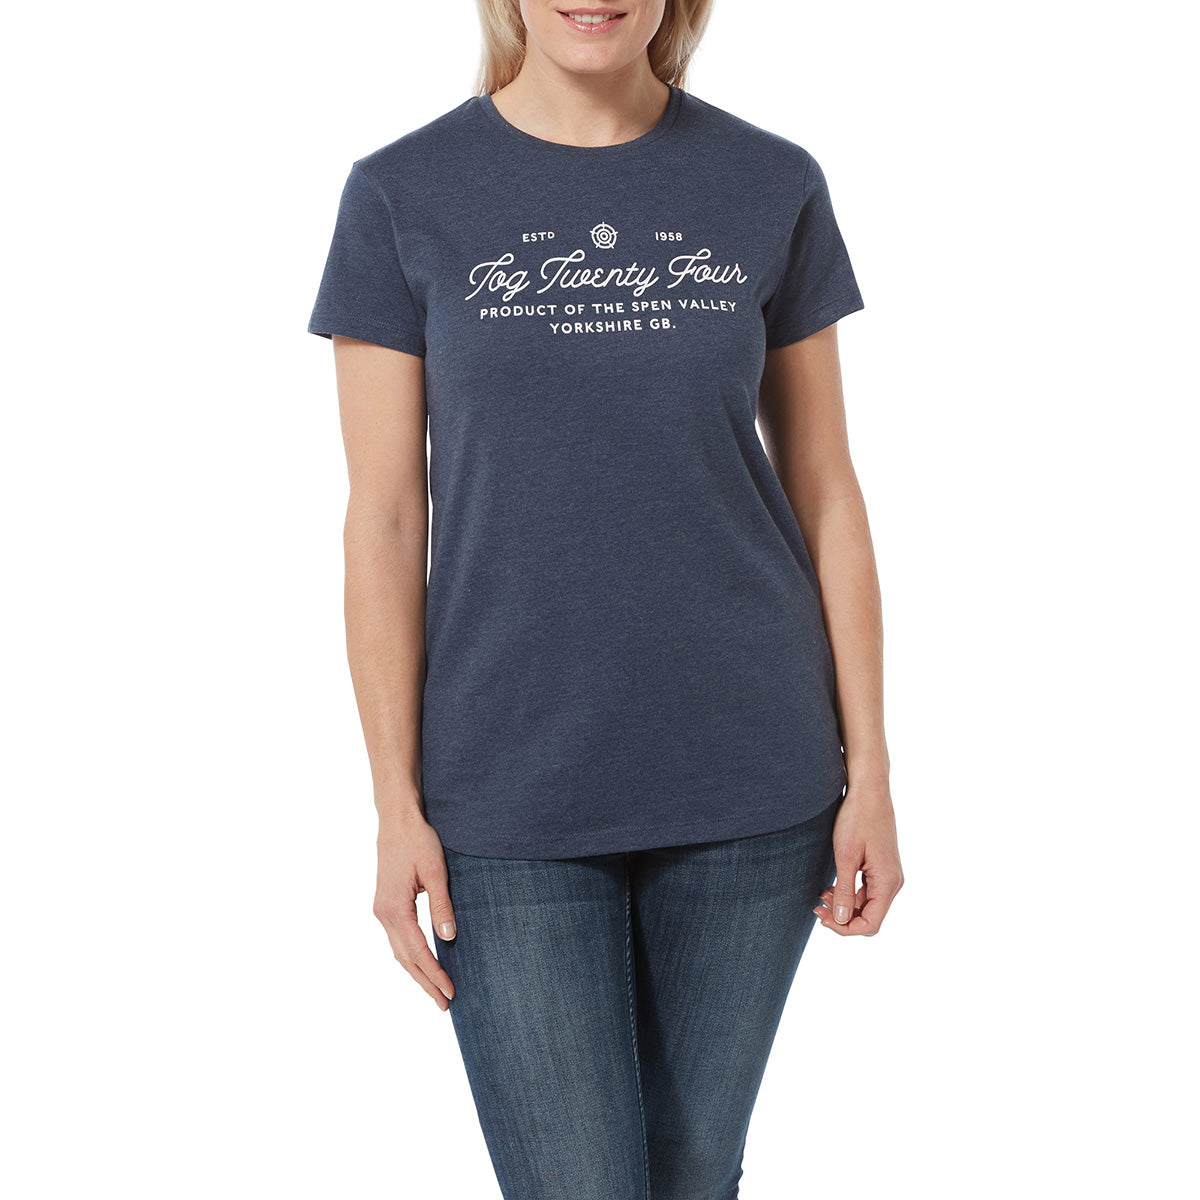 Harome Womens Graphic T-Shirt Script - Naval Marl